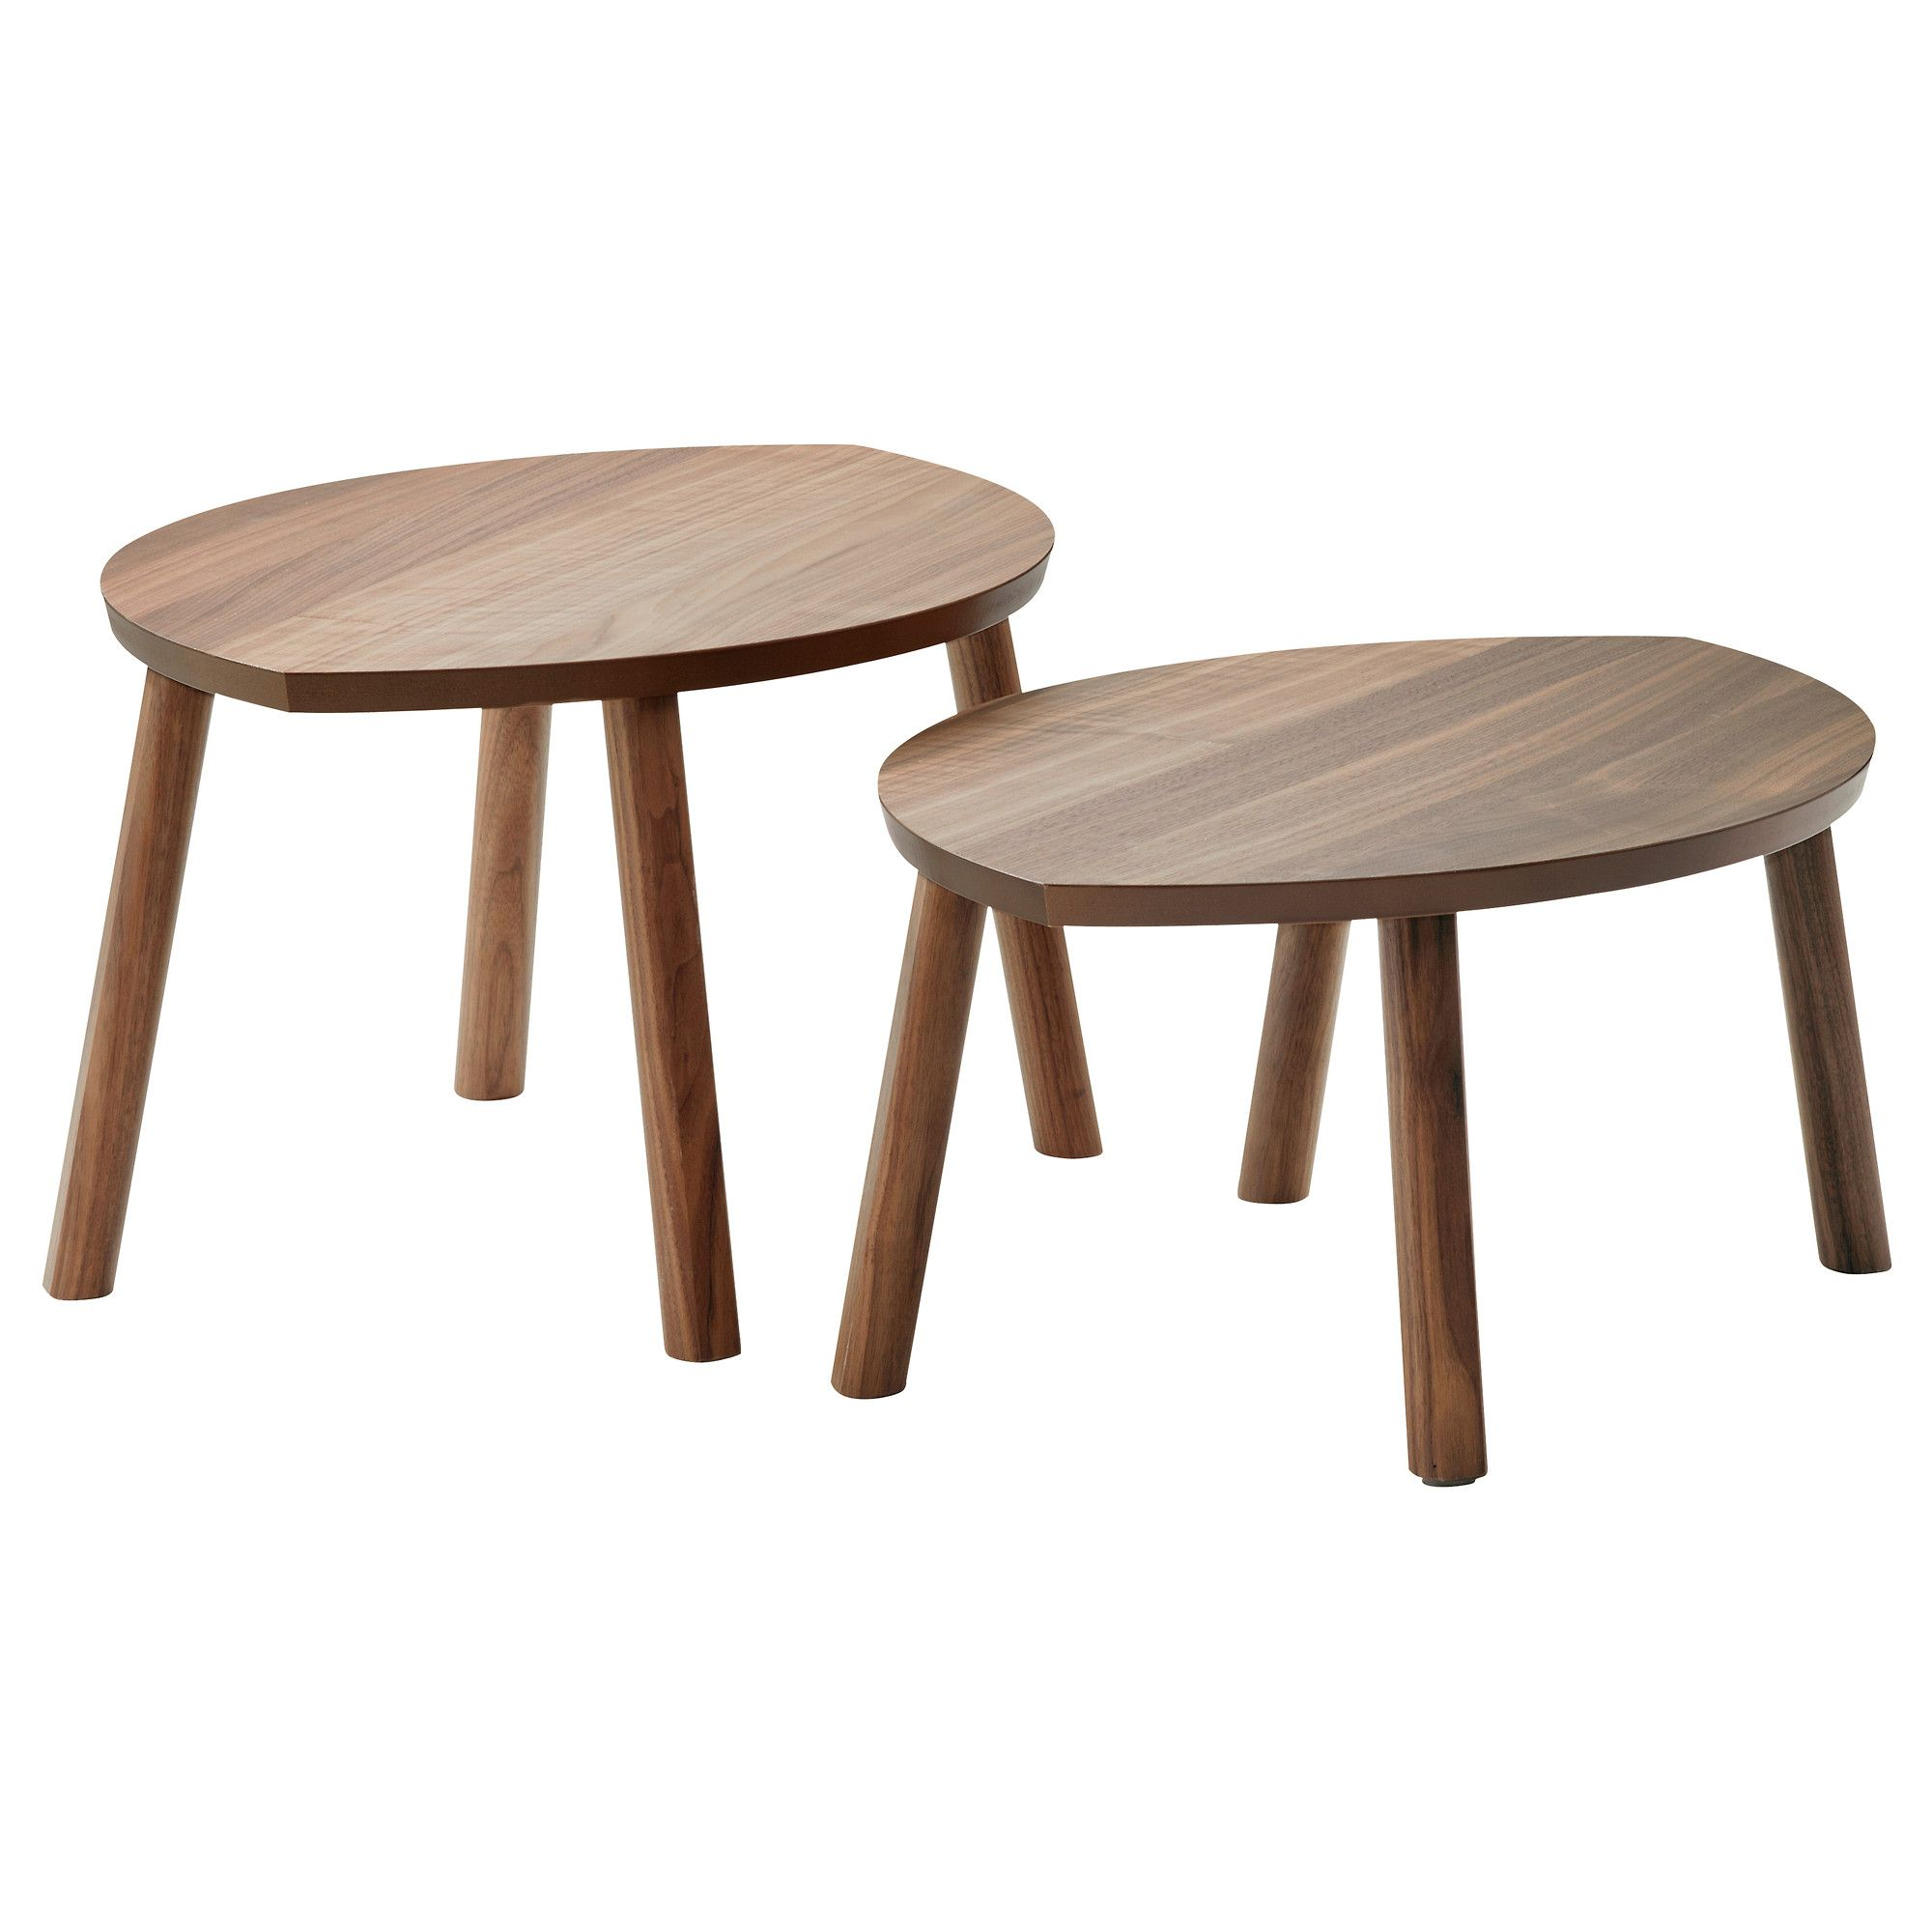 Stockholm nest of tables set of 2 ikea 249 for the two go in ikea stockholm nesting tables set of 2 the table surface in walnut veneer and legs in solid walnut give a warm natural feeling to your room geotapseo Choice Image